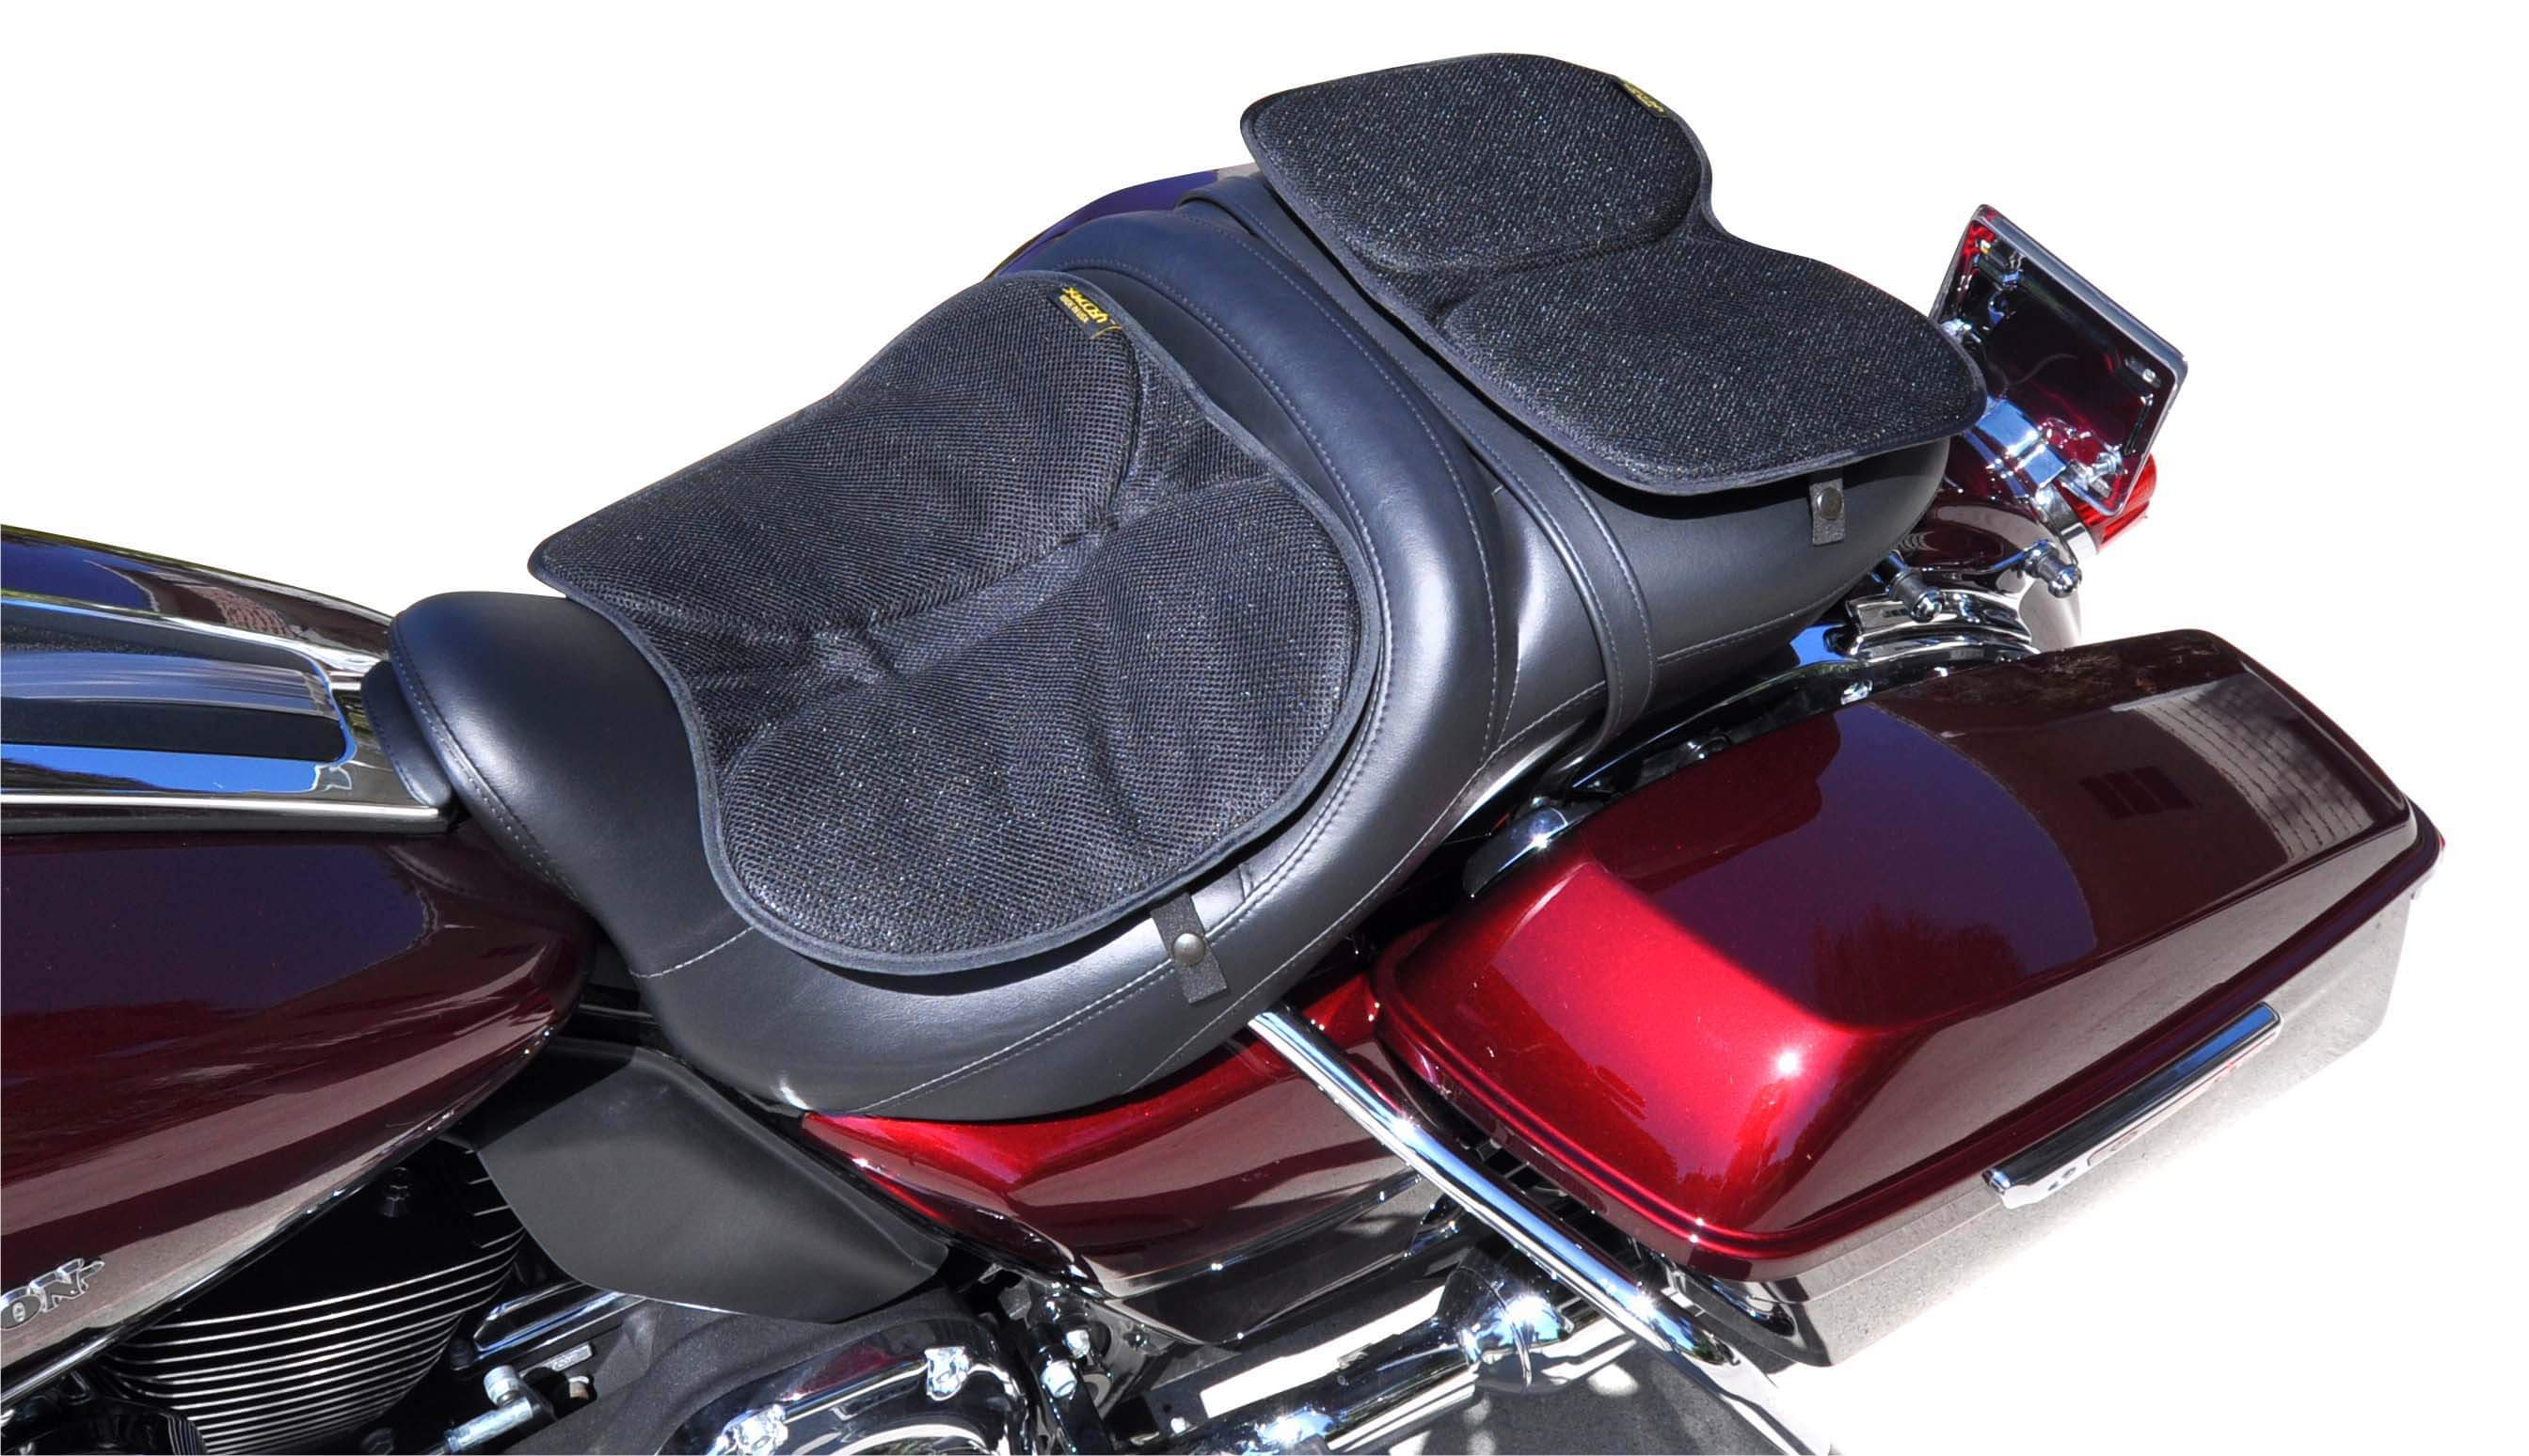 Motorcycle Seat Pads American Motorcycle Specialties - Vinyl for motorcycle seat covers